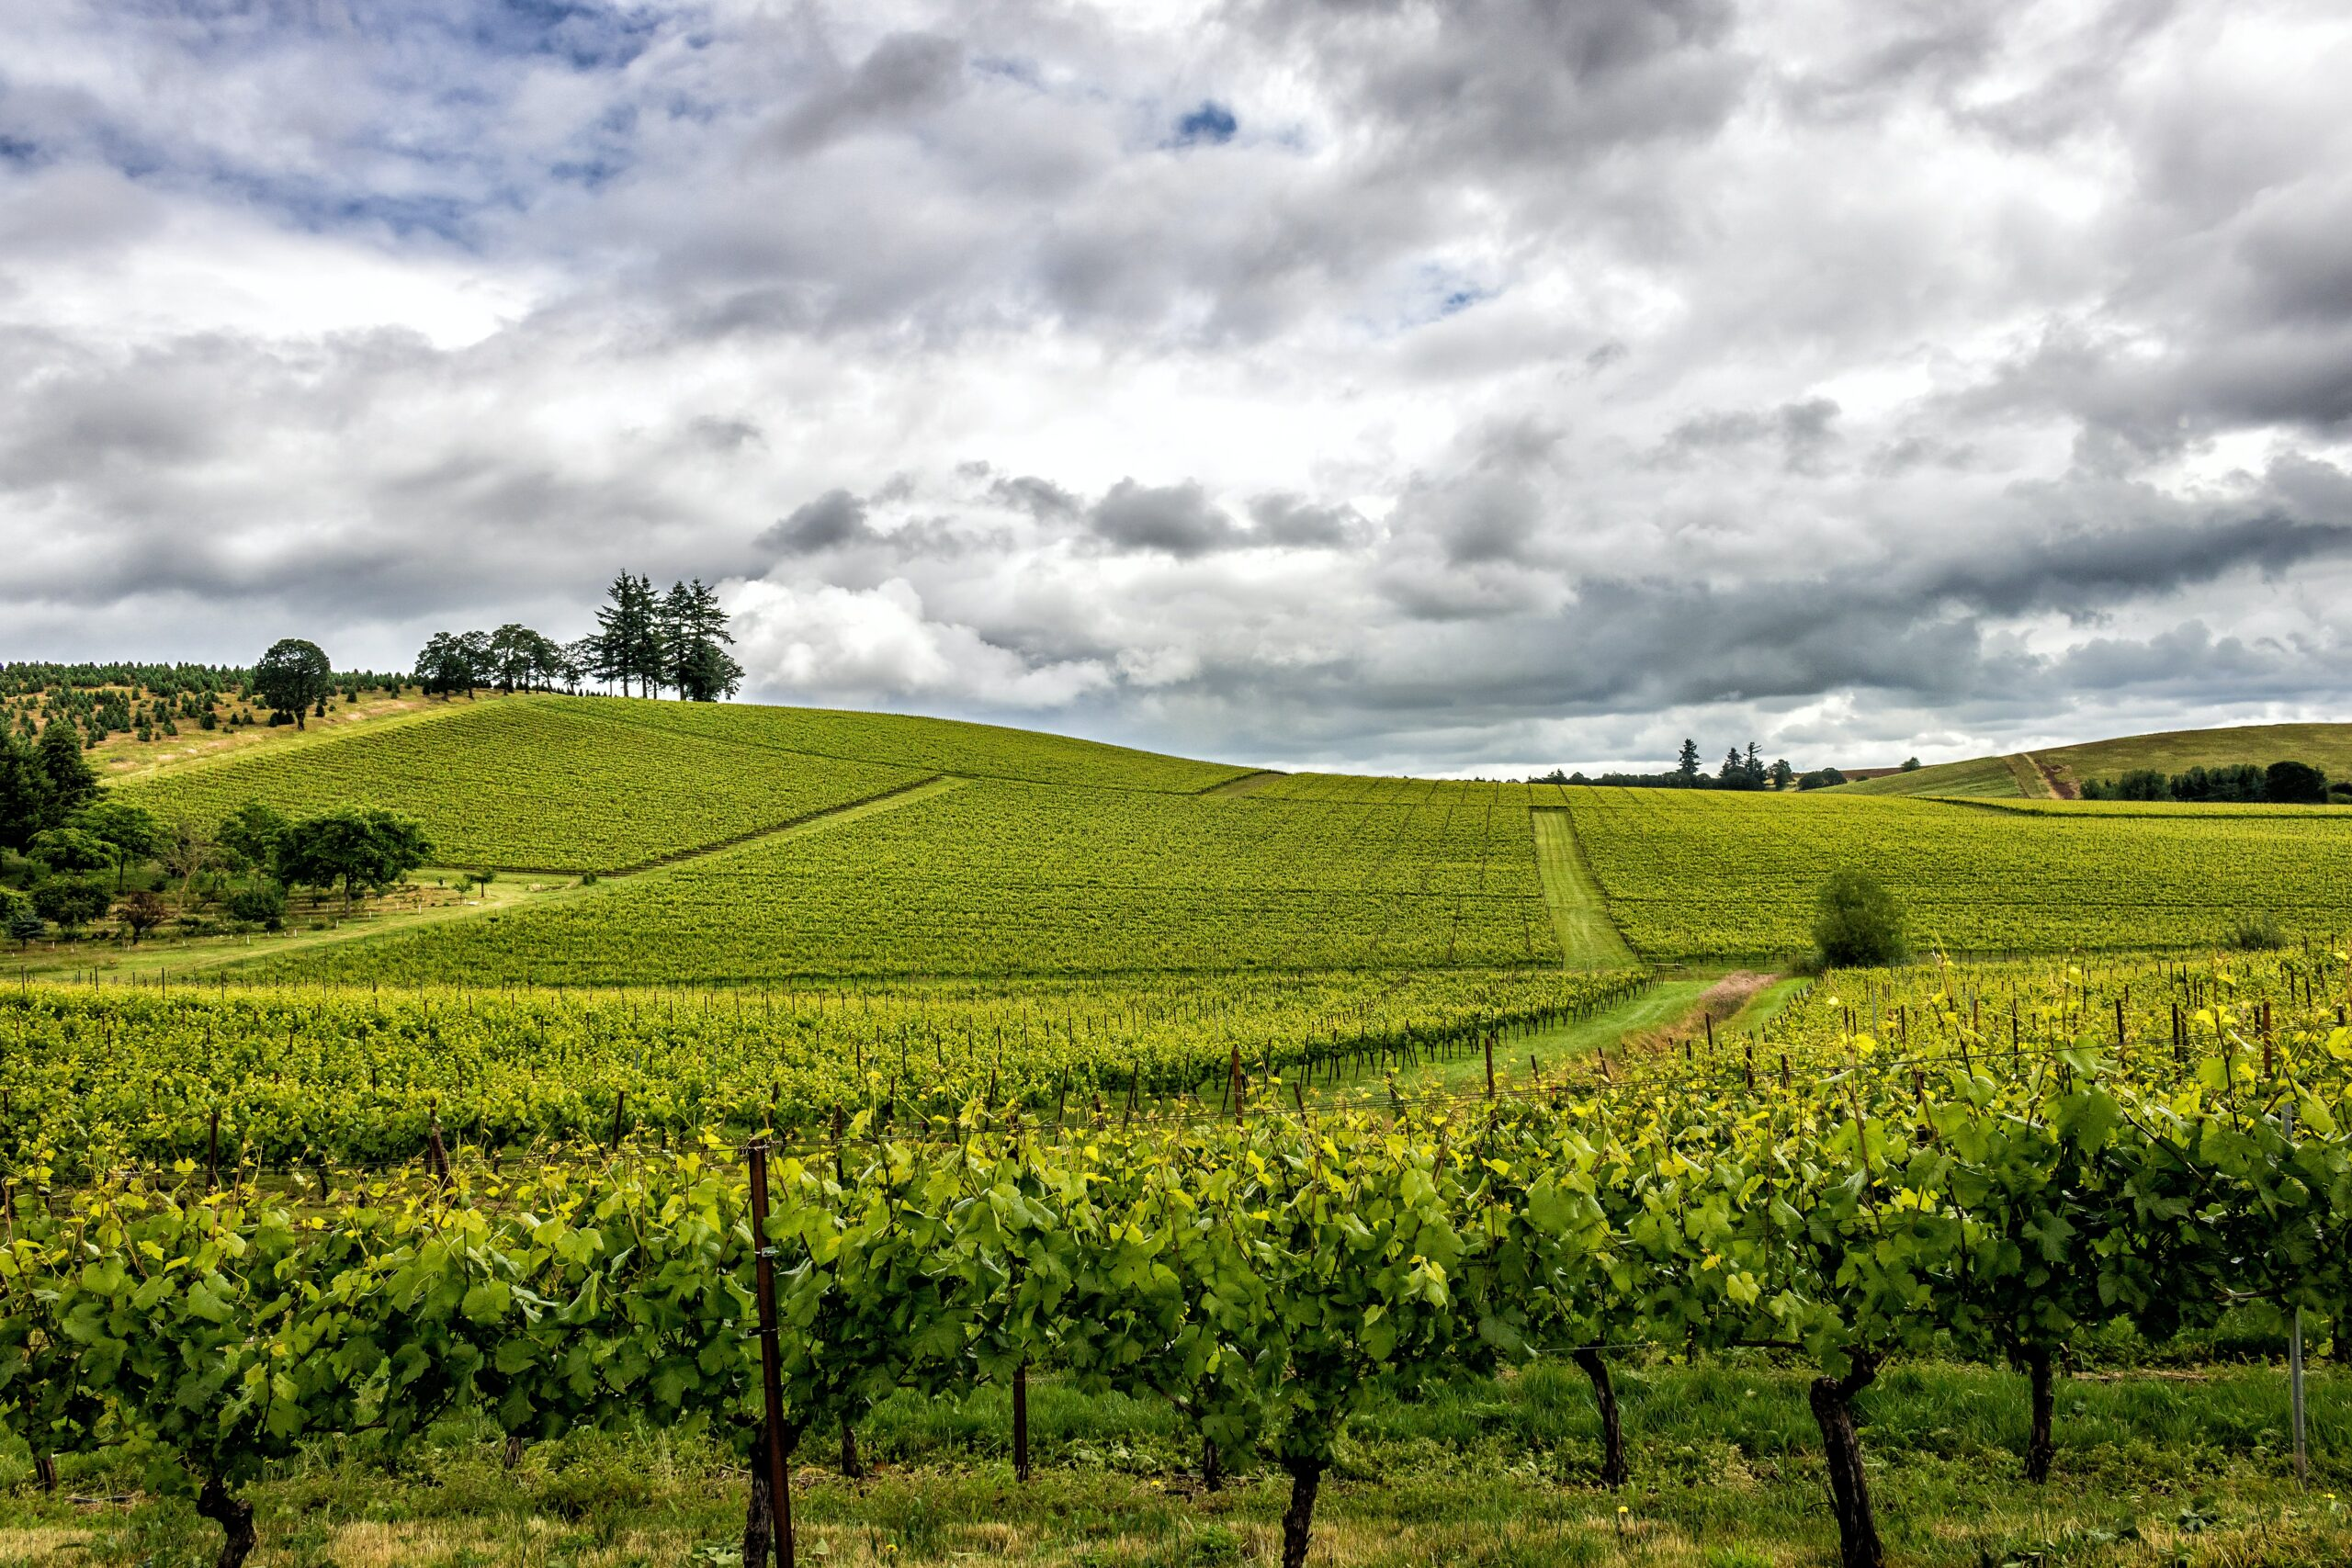 Yakima Valley green rolling hills with vineyards